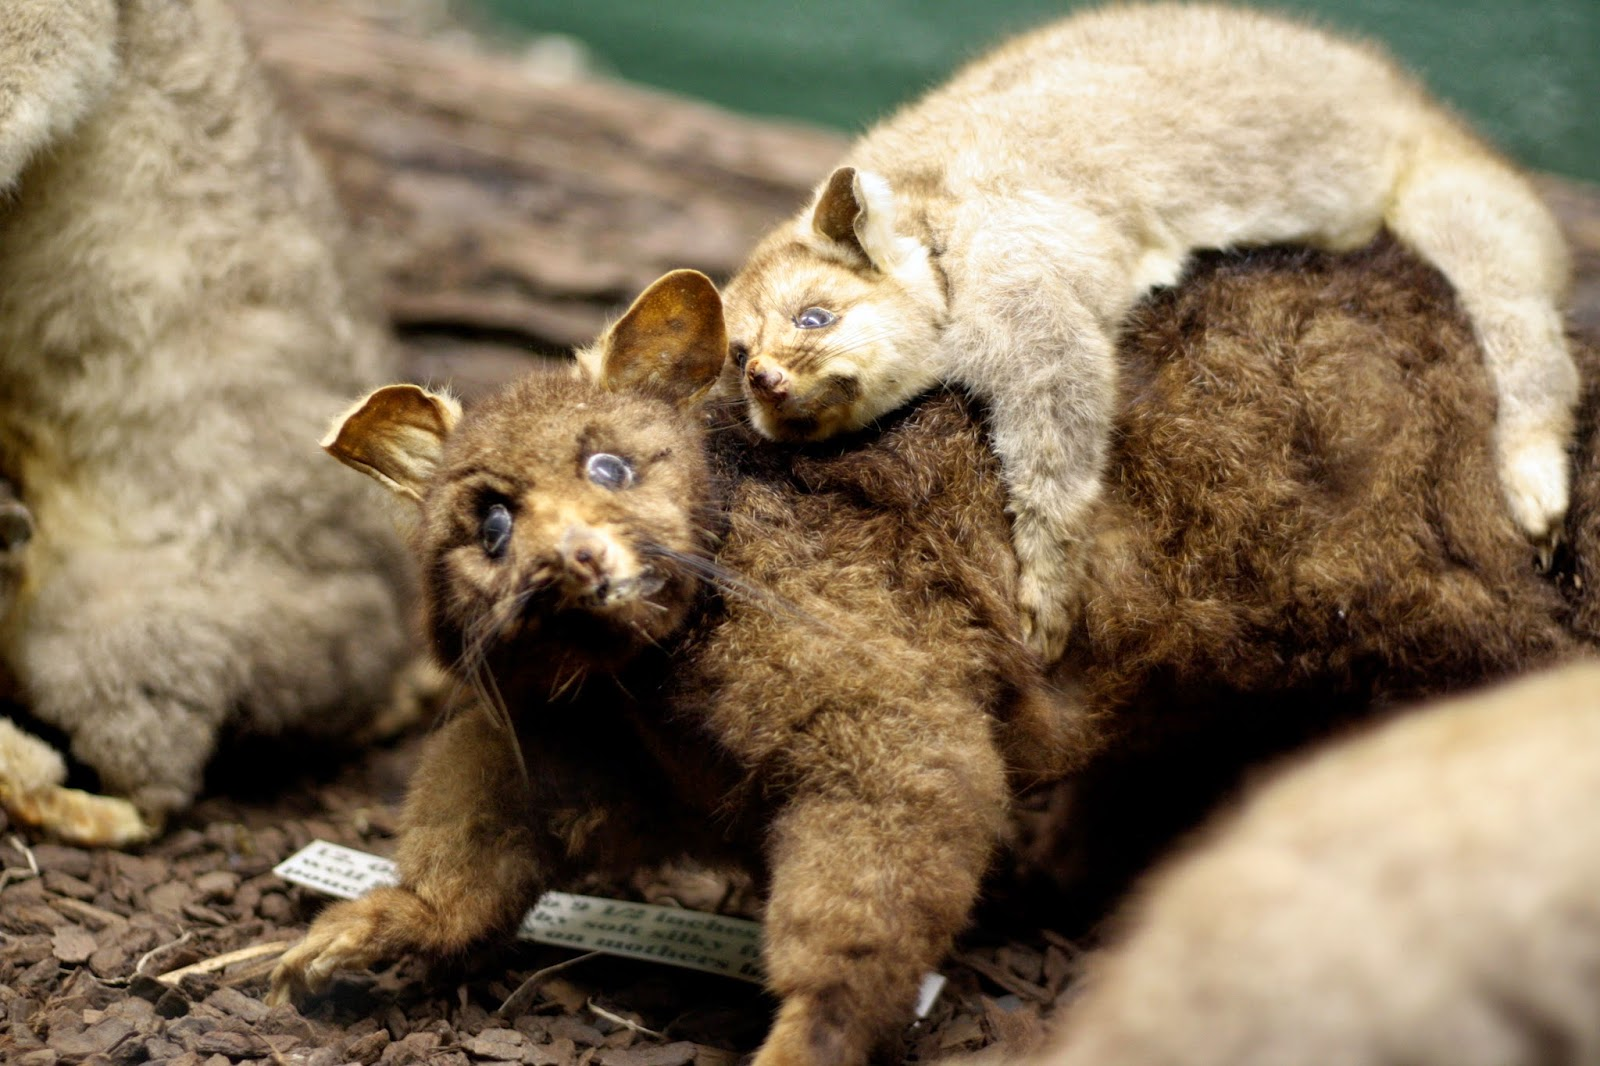 A small, white possum, rides a larger brown possum. They both look very soft.